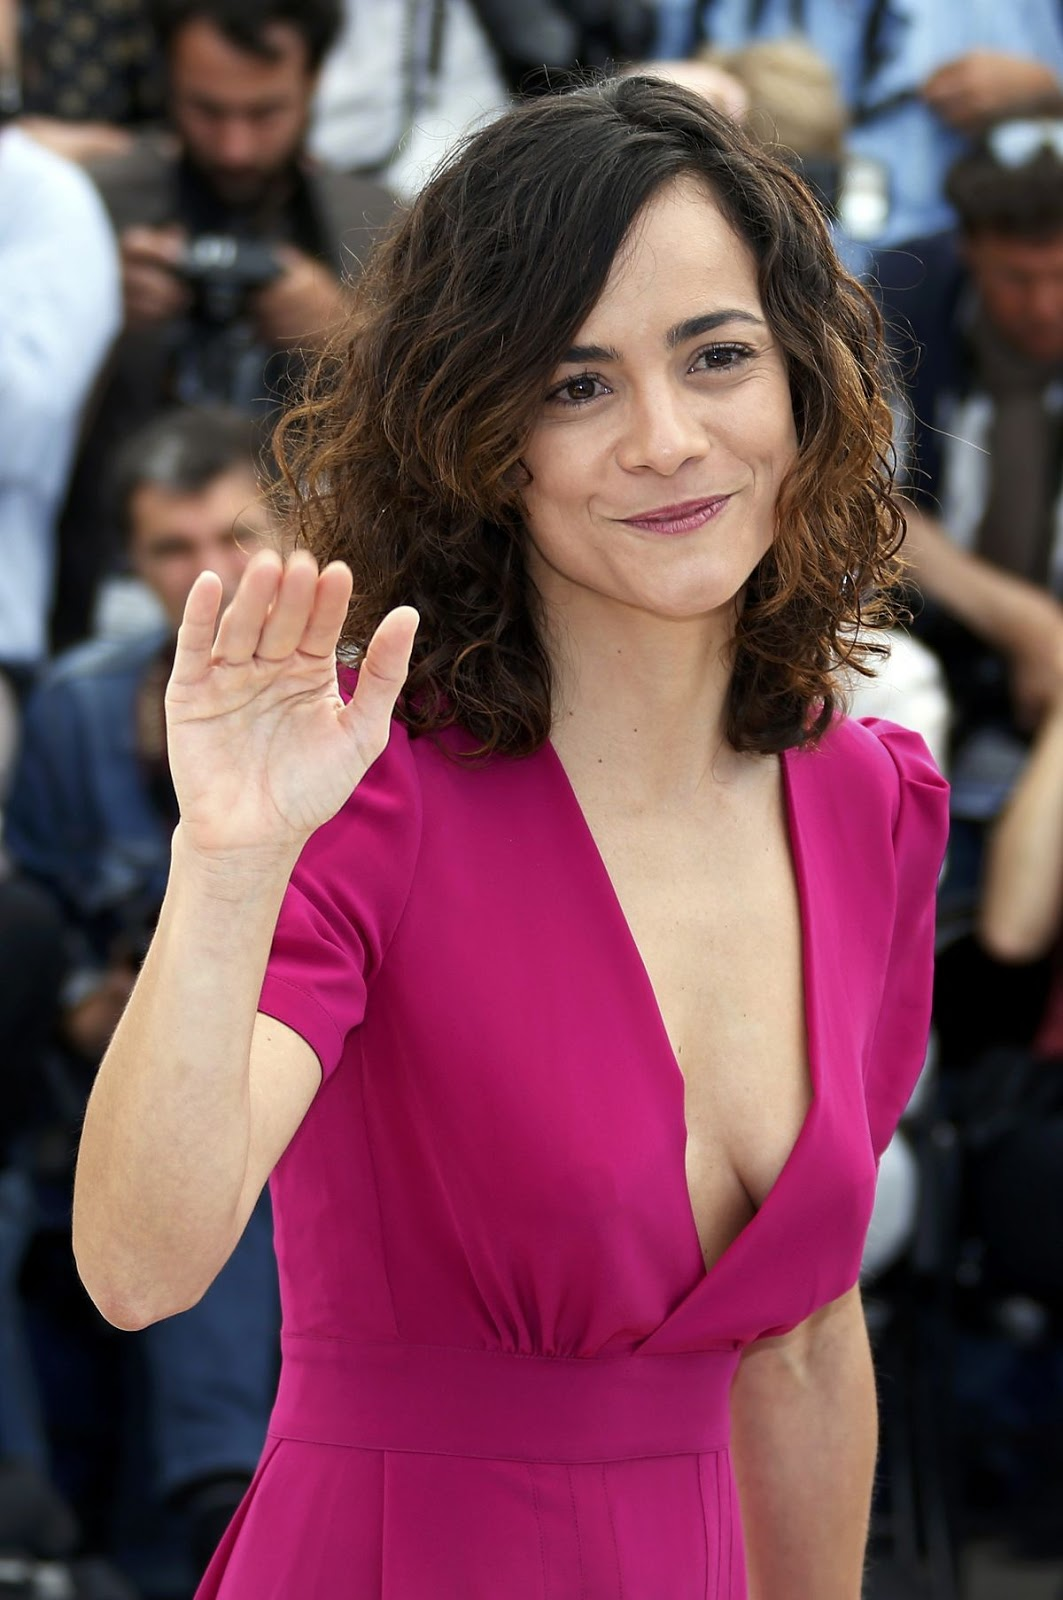 Alice Braga nudes (58 photo), images Bikini, Twitter, braless 2020